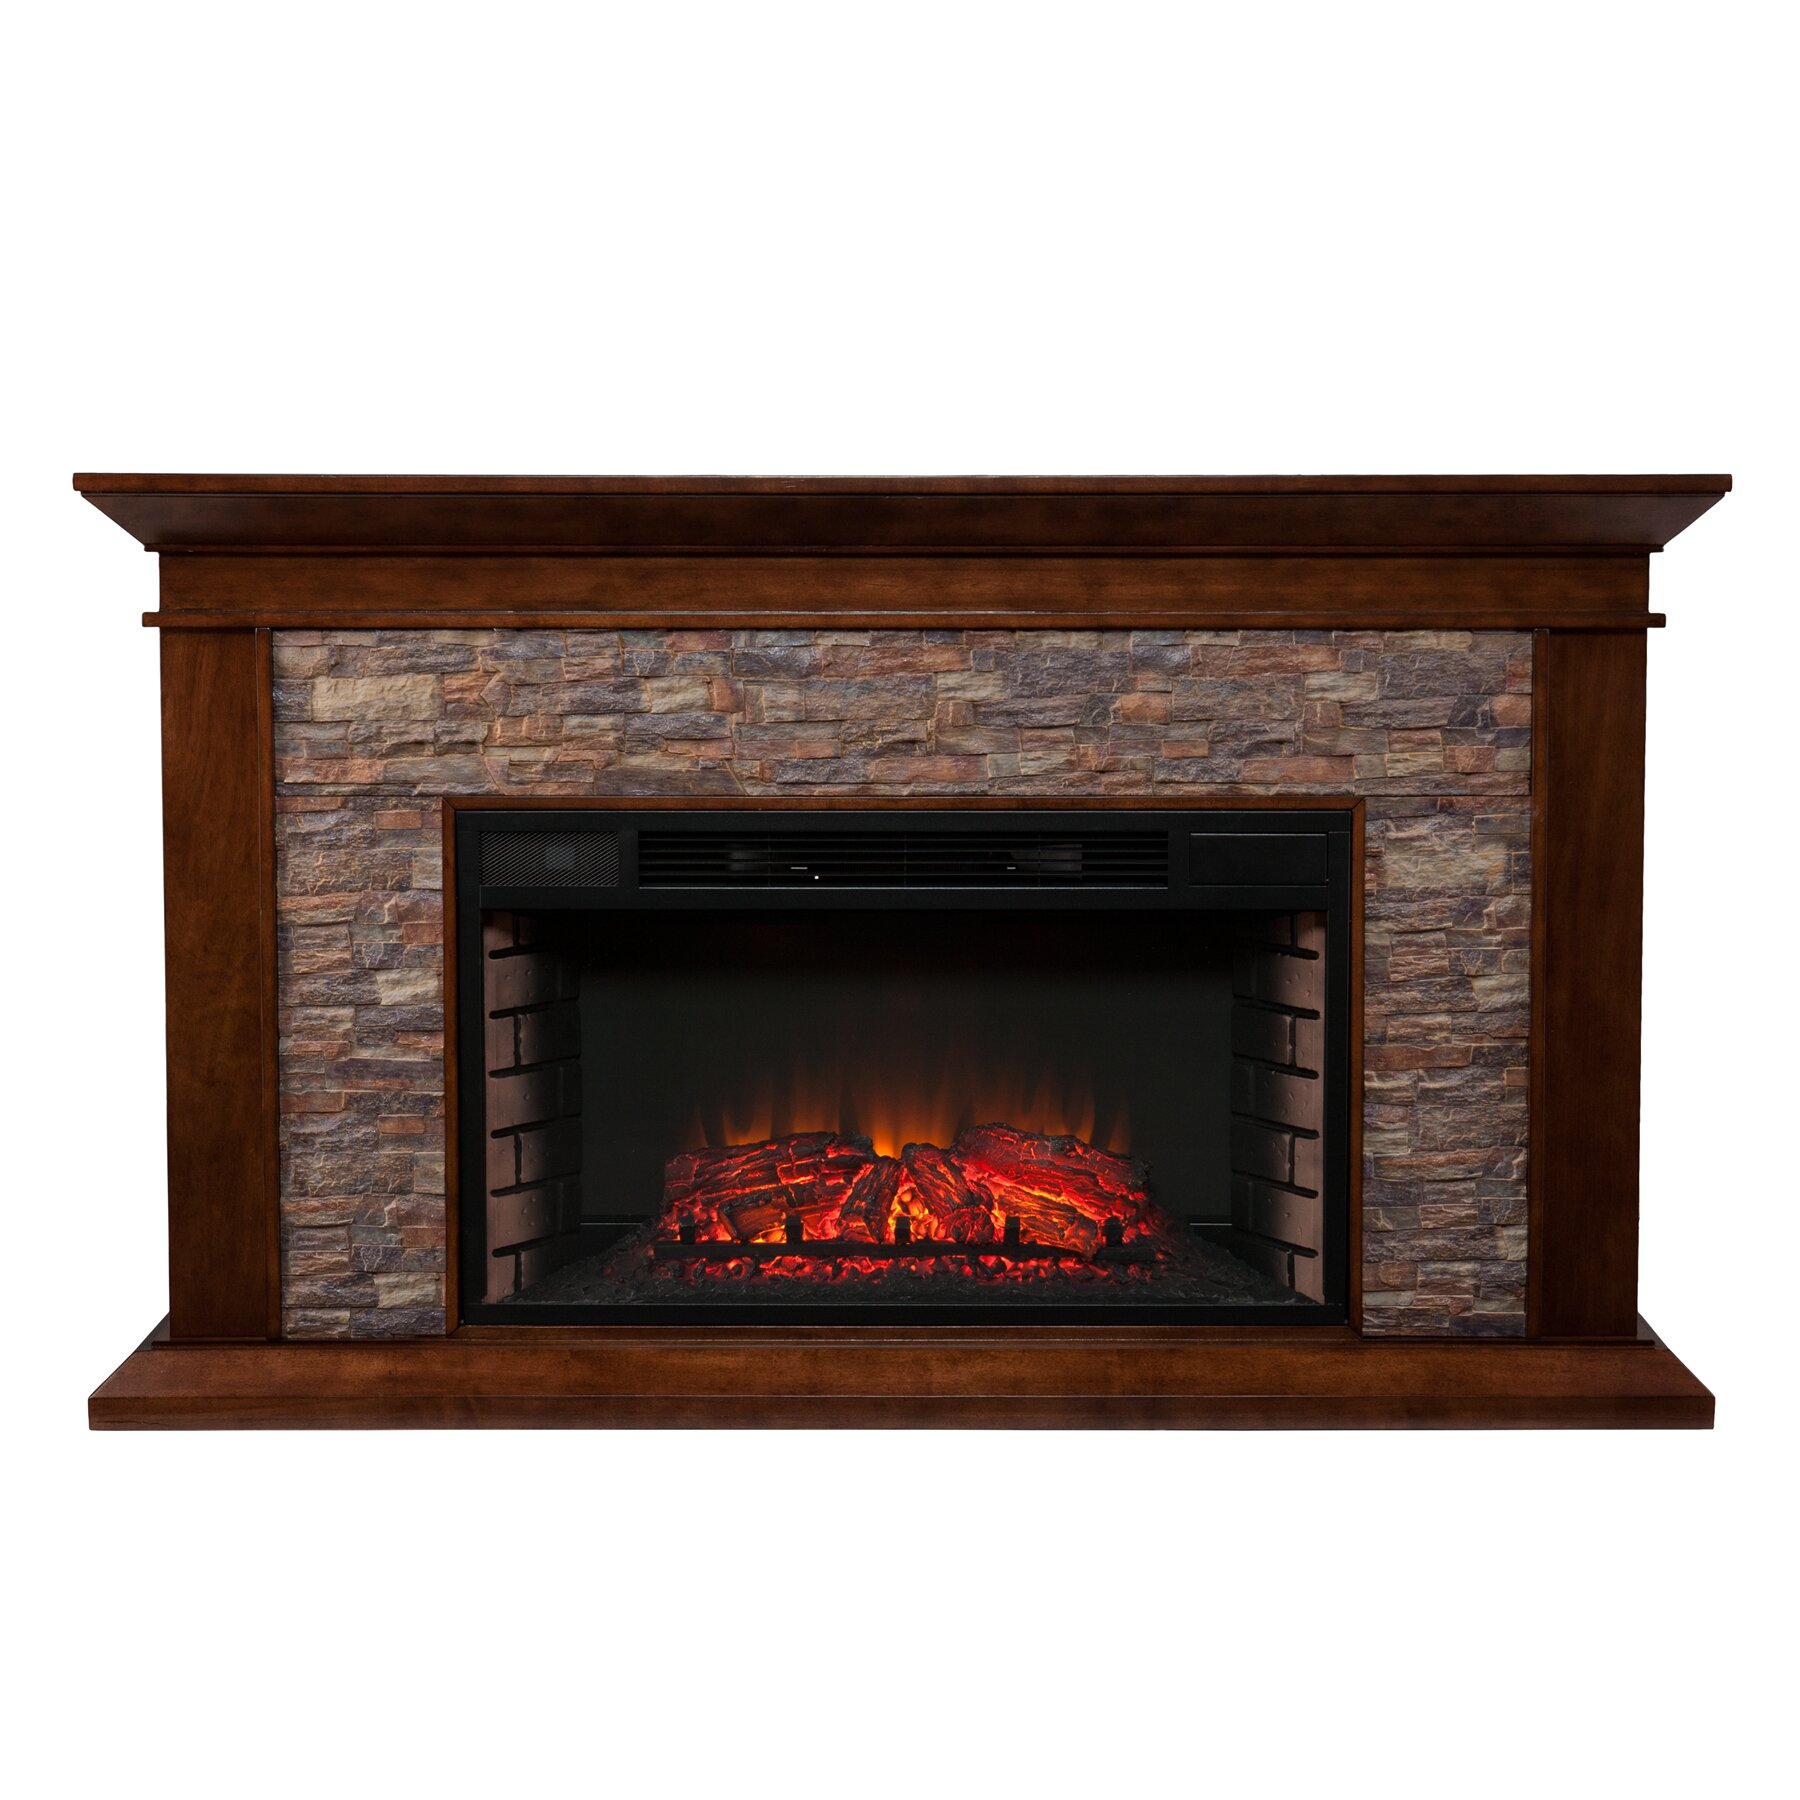 Darby Home Co Simulated Electric Fireplace & Reviews | Wayfair